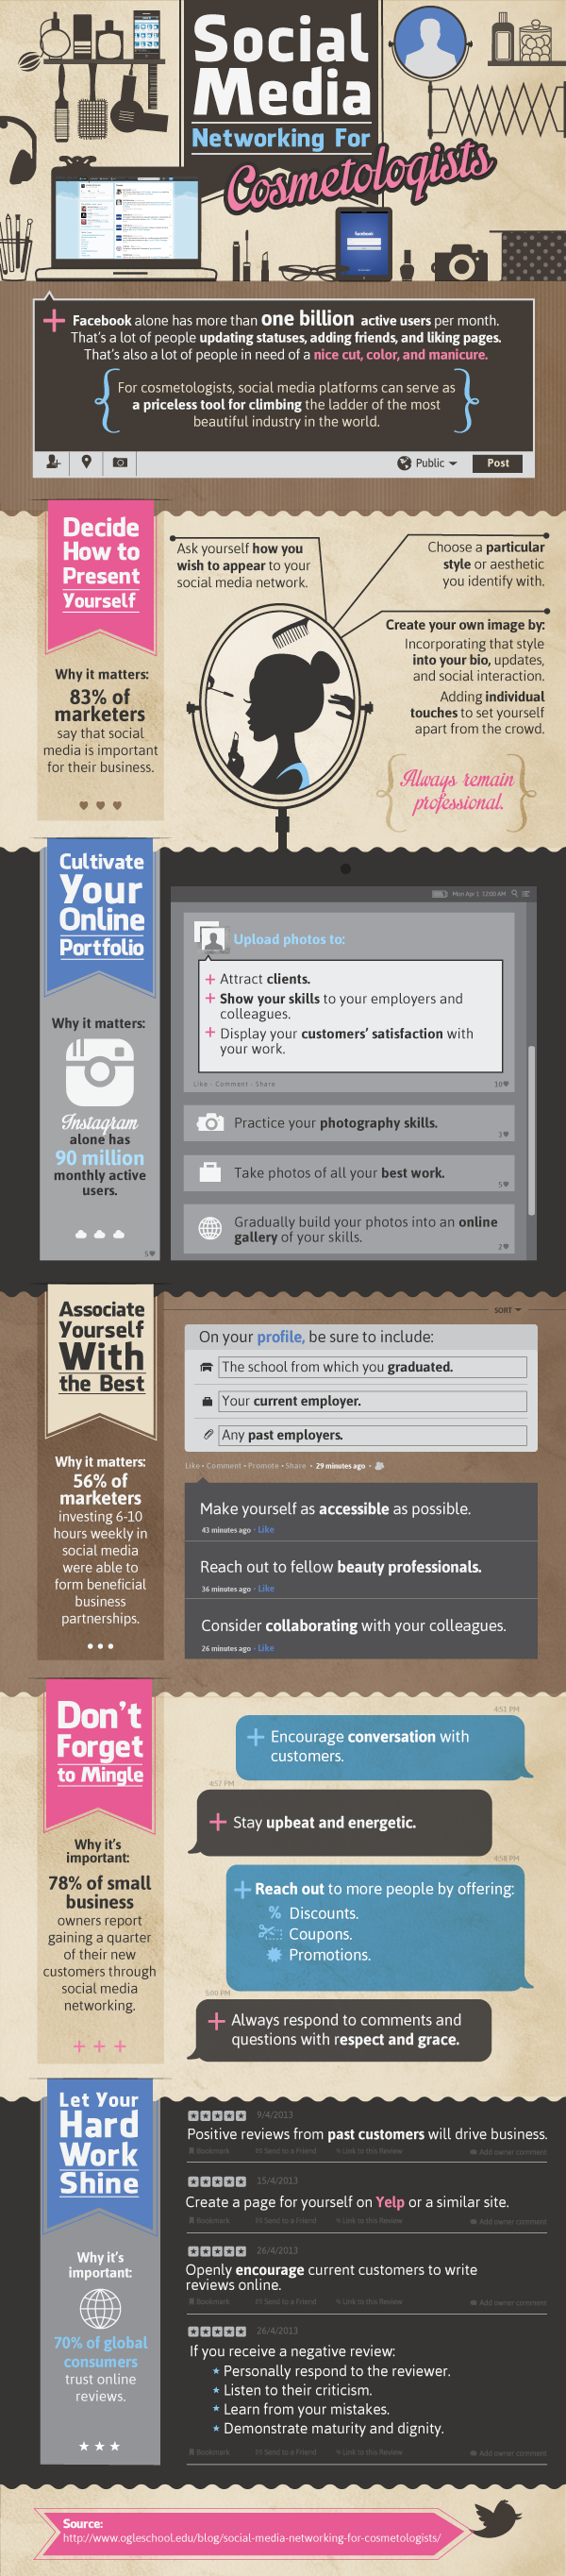 social media networking for cosmetologists infographic